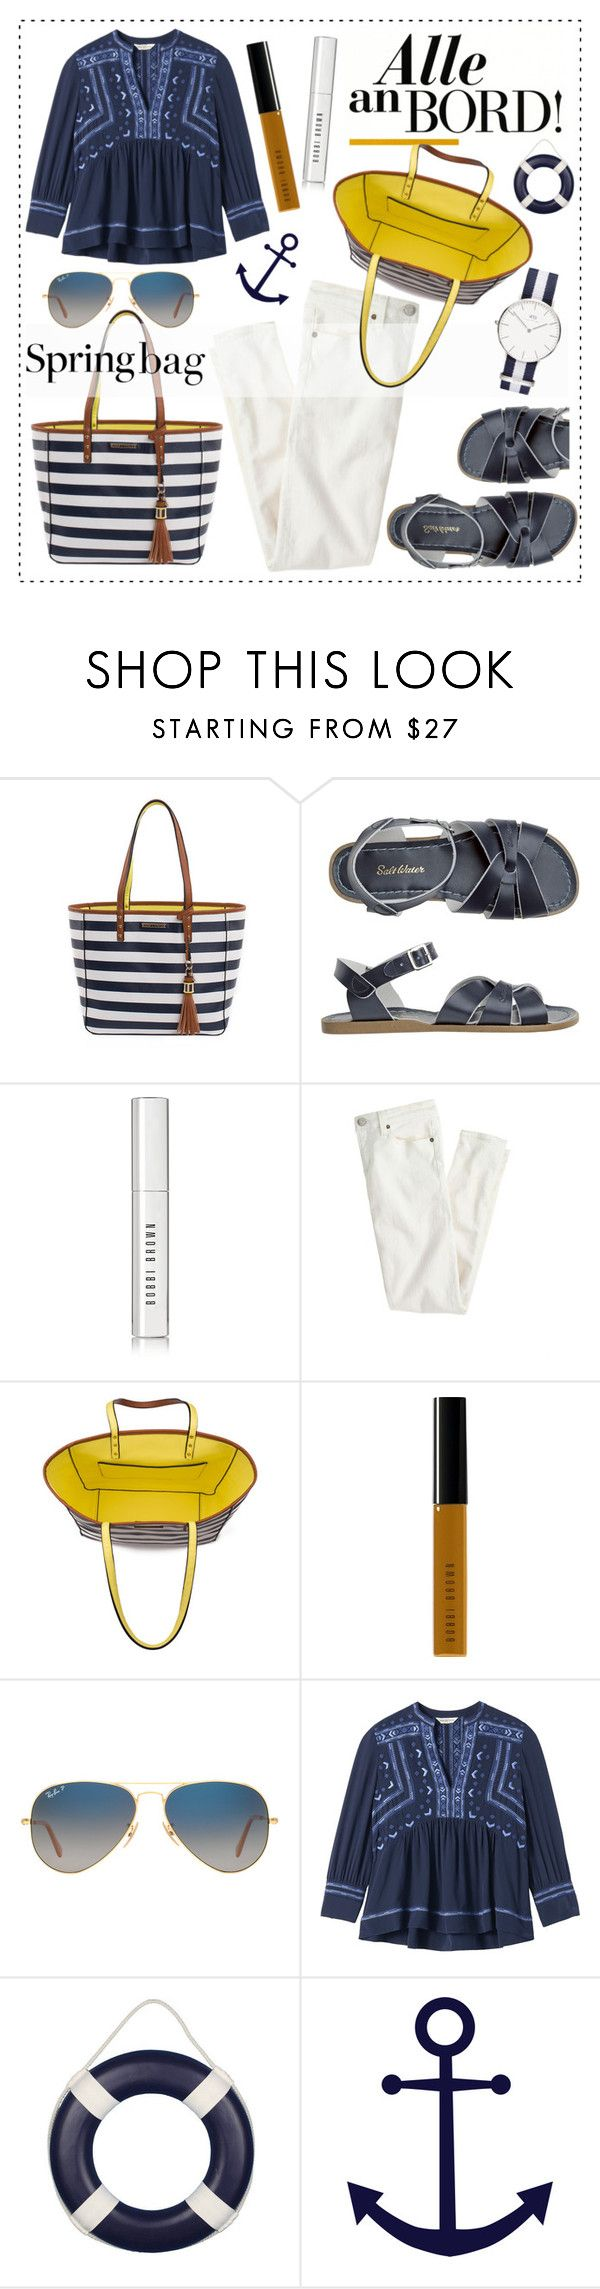 """""""Spring Bag Poppy & Peonies"""" by alaria ❤ liked on Polyvore featuring Toast, Bobbi Brown Cosmetics, J.Crew, Ray-Ban, Rebecca Taylor, nauticalstyle, totebags and springbag"""